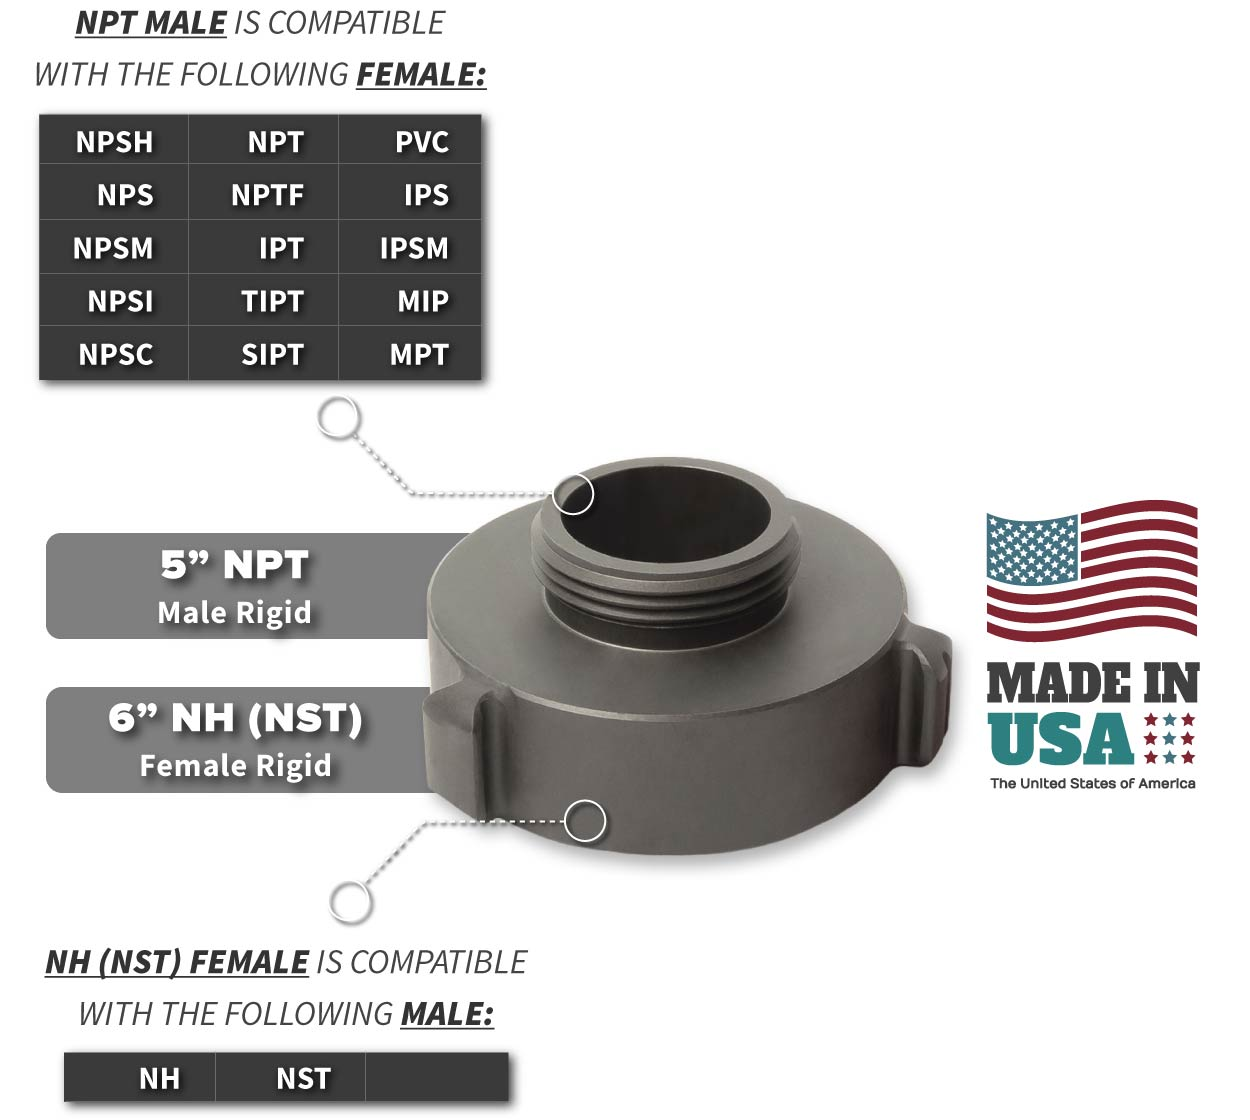 6 Inch NH-NST Female x 5 Inch NPT Male Compatibility Thread Chart